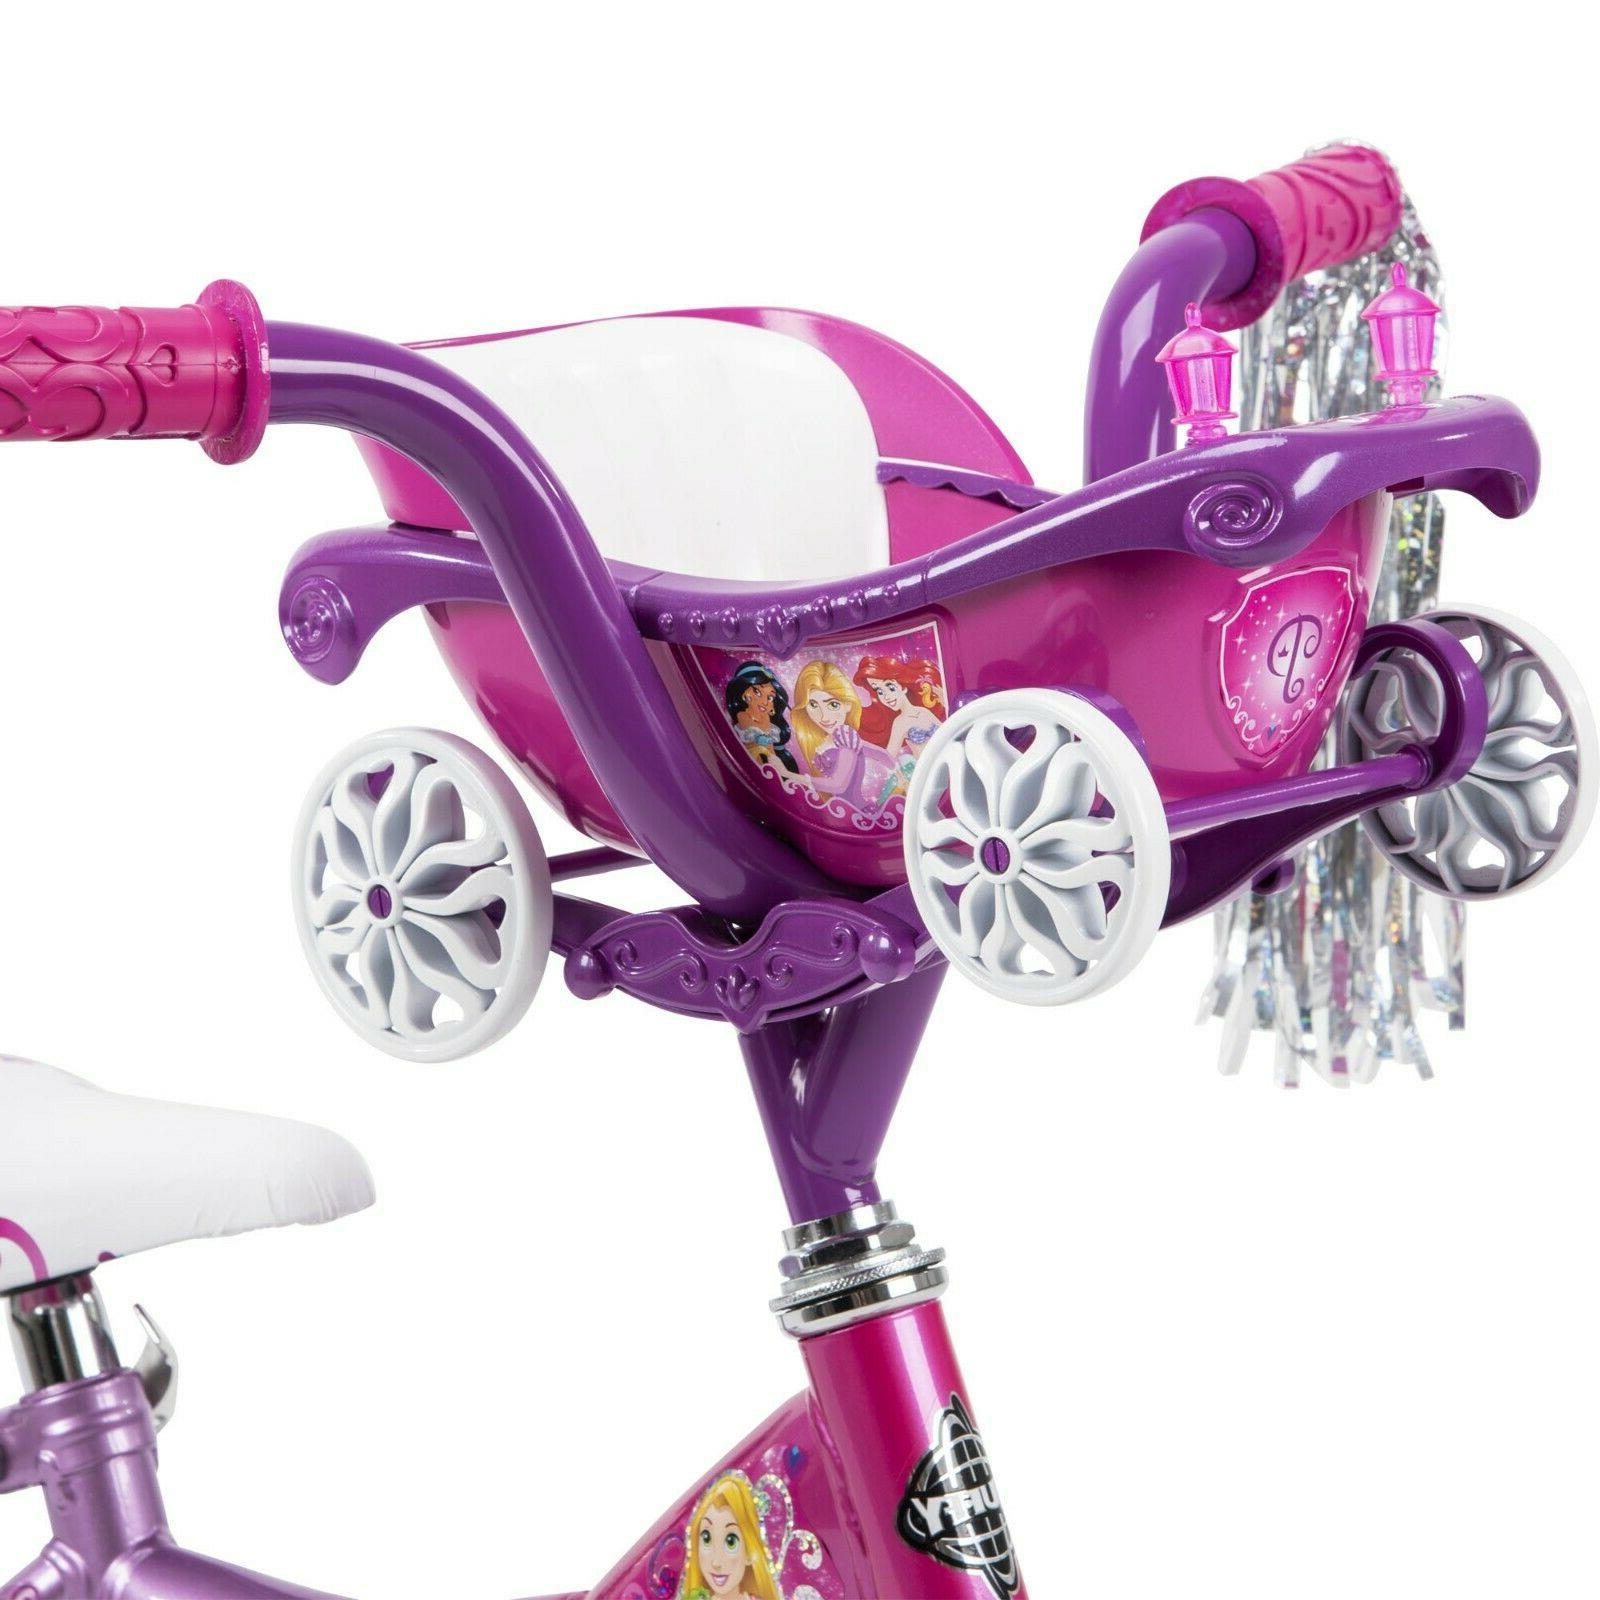 Huffy Kid's Bike with